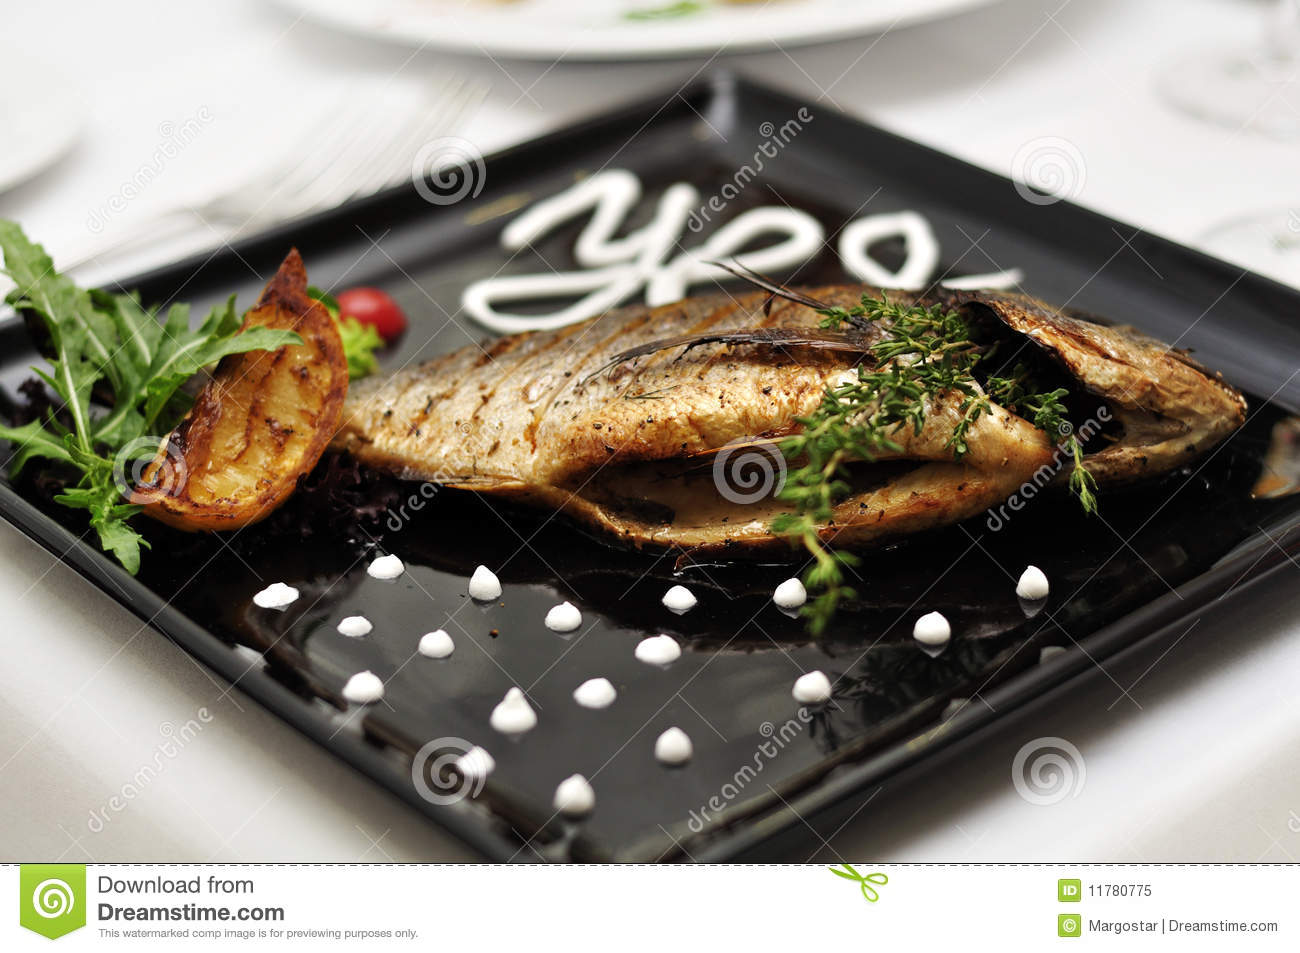 Fried fish royalty free stock photo image 11780775 for Fried fish restaurants